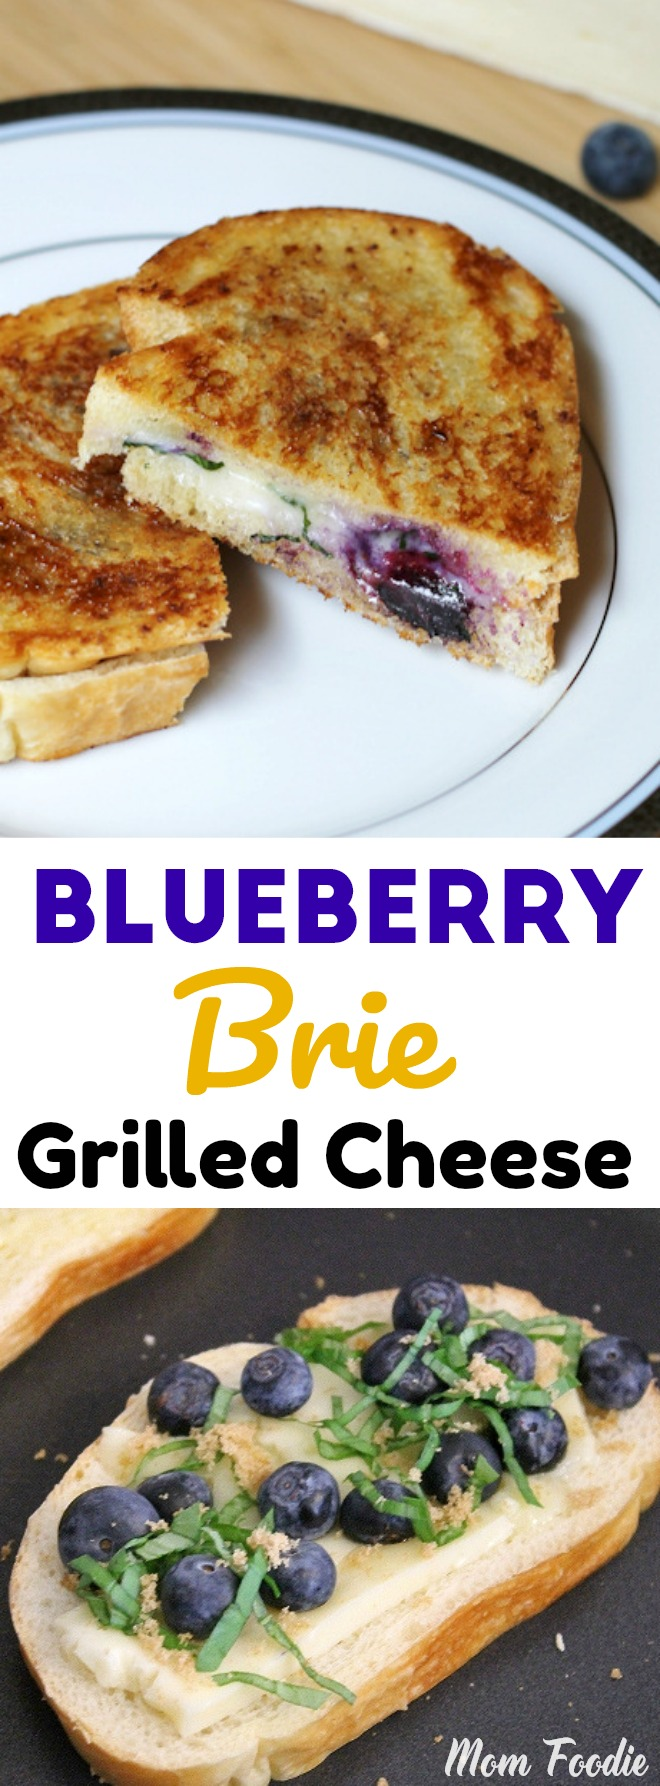 Blueberry Brie Grilled Cheese with basil and brown sugar